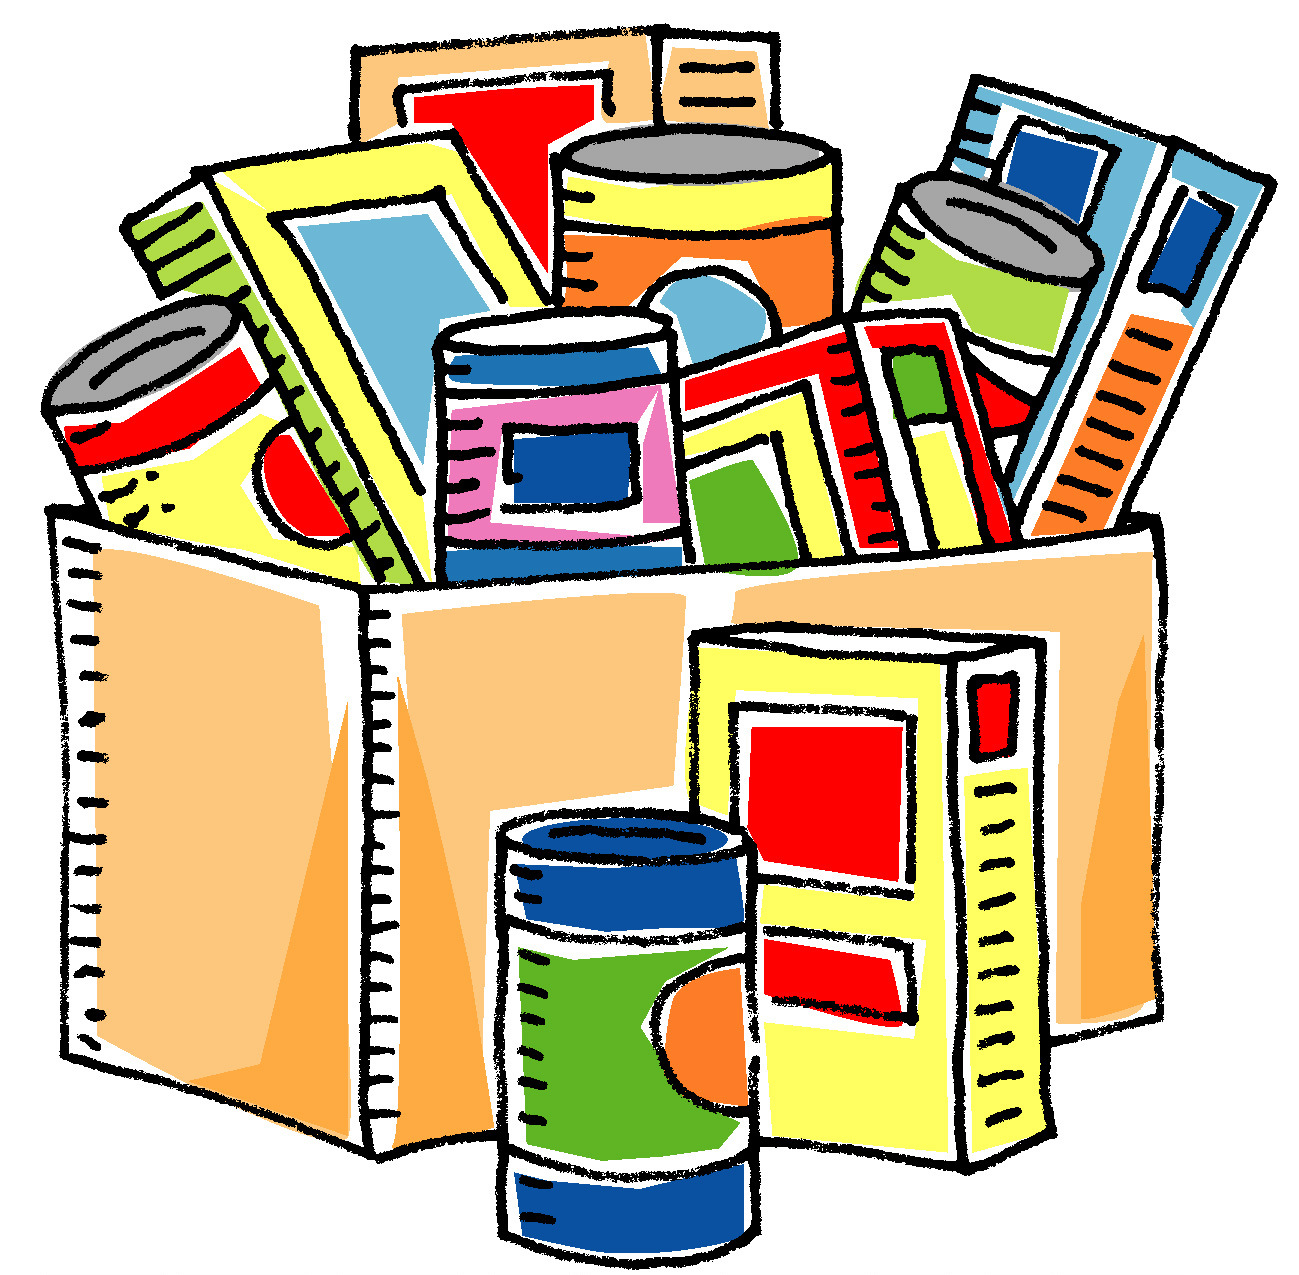 83 Images Of Food Pantry You Can Use These Frees For Clipart